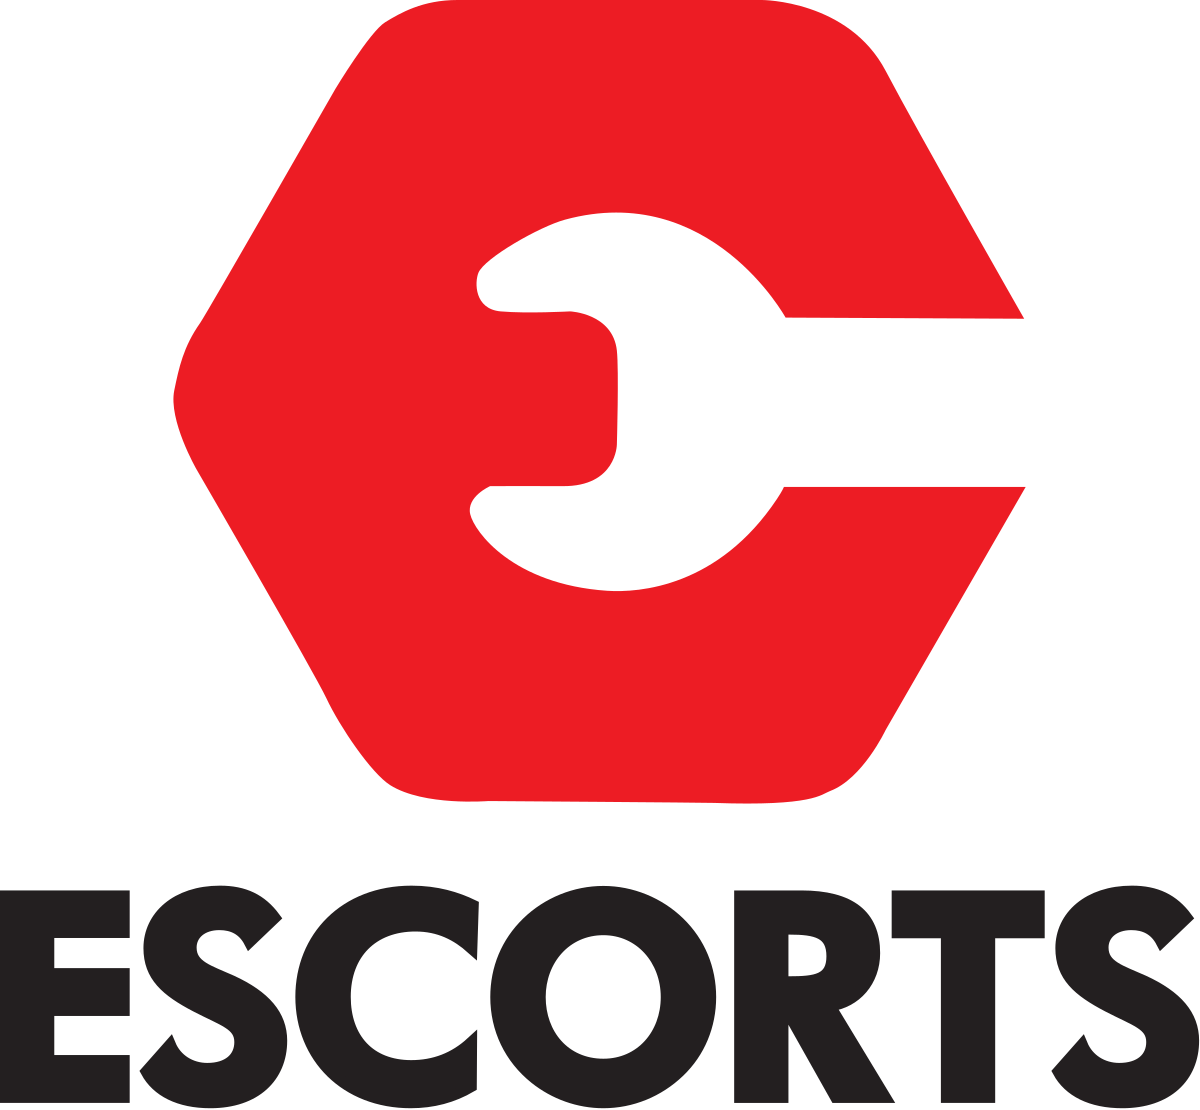 Escorts Q1 profit up by 5.3 per cent to Rs 92.2 crore